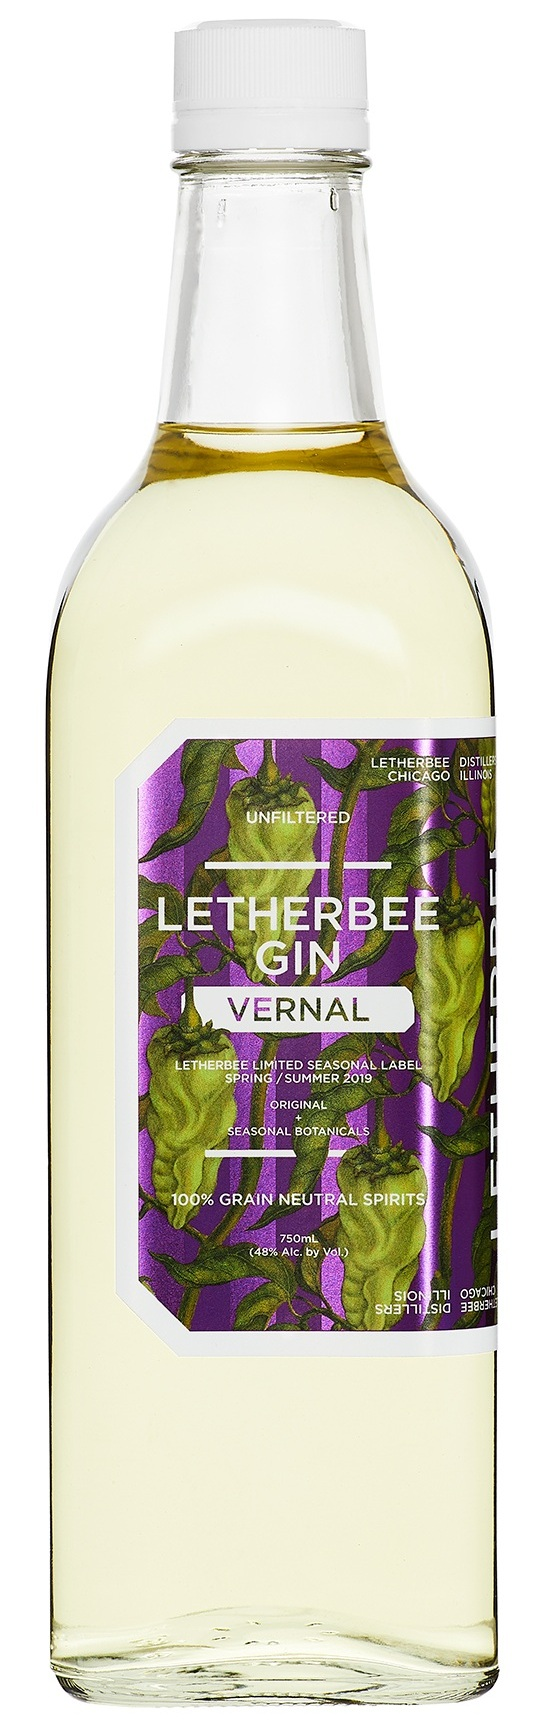 VERNAL GIN 2019   In the wake of Winter, we're all looking for a little heat. What better way to usher in Spring than to saddle up with some green chiles – savory, bold, and warm flavors emblematic of Mexico and the USA's Southwest. Fresh poblanos and green bell peppers bring a vegetal and grassy palate to our 2019 Vernal. Simple and straightforward, this recipe features a pared-down botanical distillate of juniper, coriander, and lemon peel with nearly a ton of poblano and green bells. Juicy and bright in body, it delivers a subtly spicy finish from our jalapeno and green hatch chile maceration.